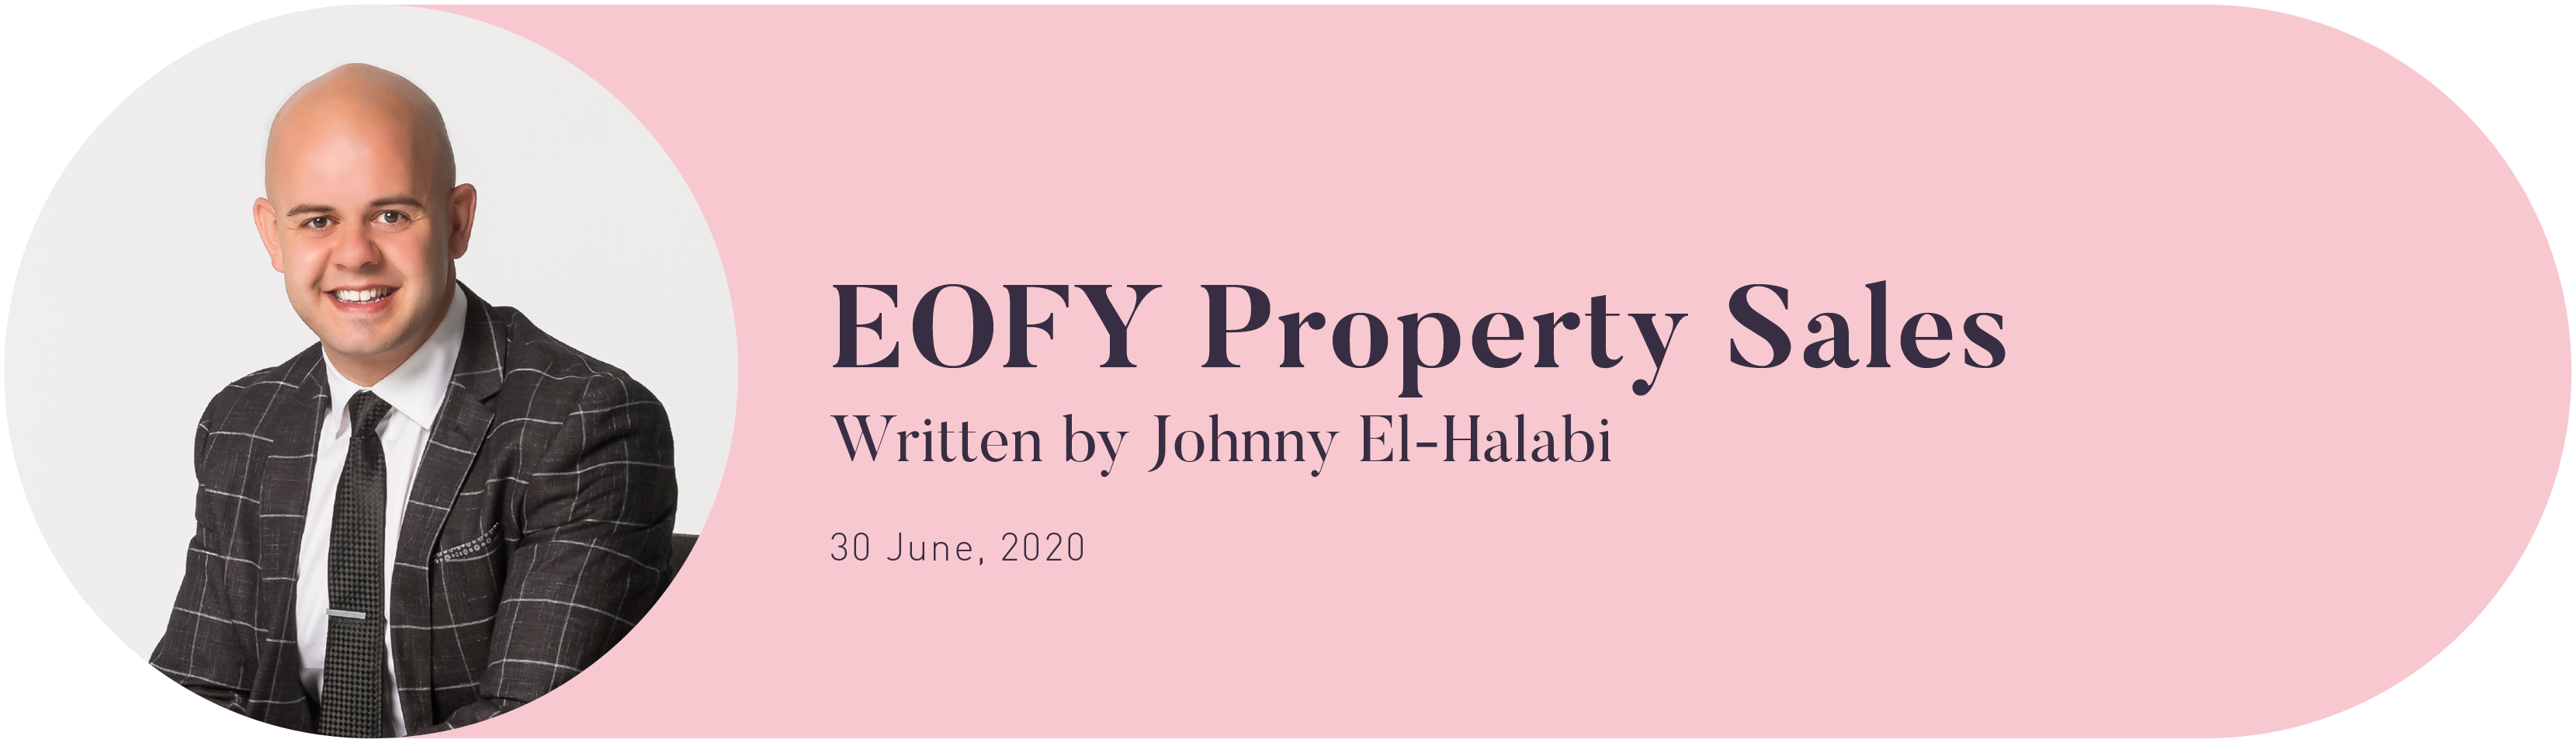 EOFY Property Sales